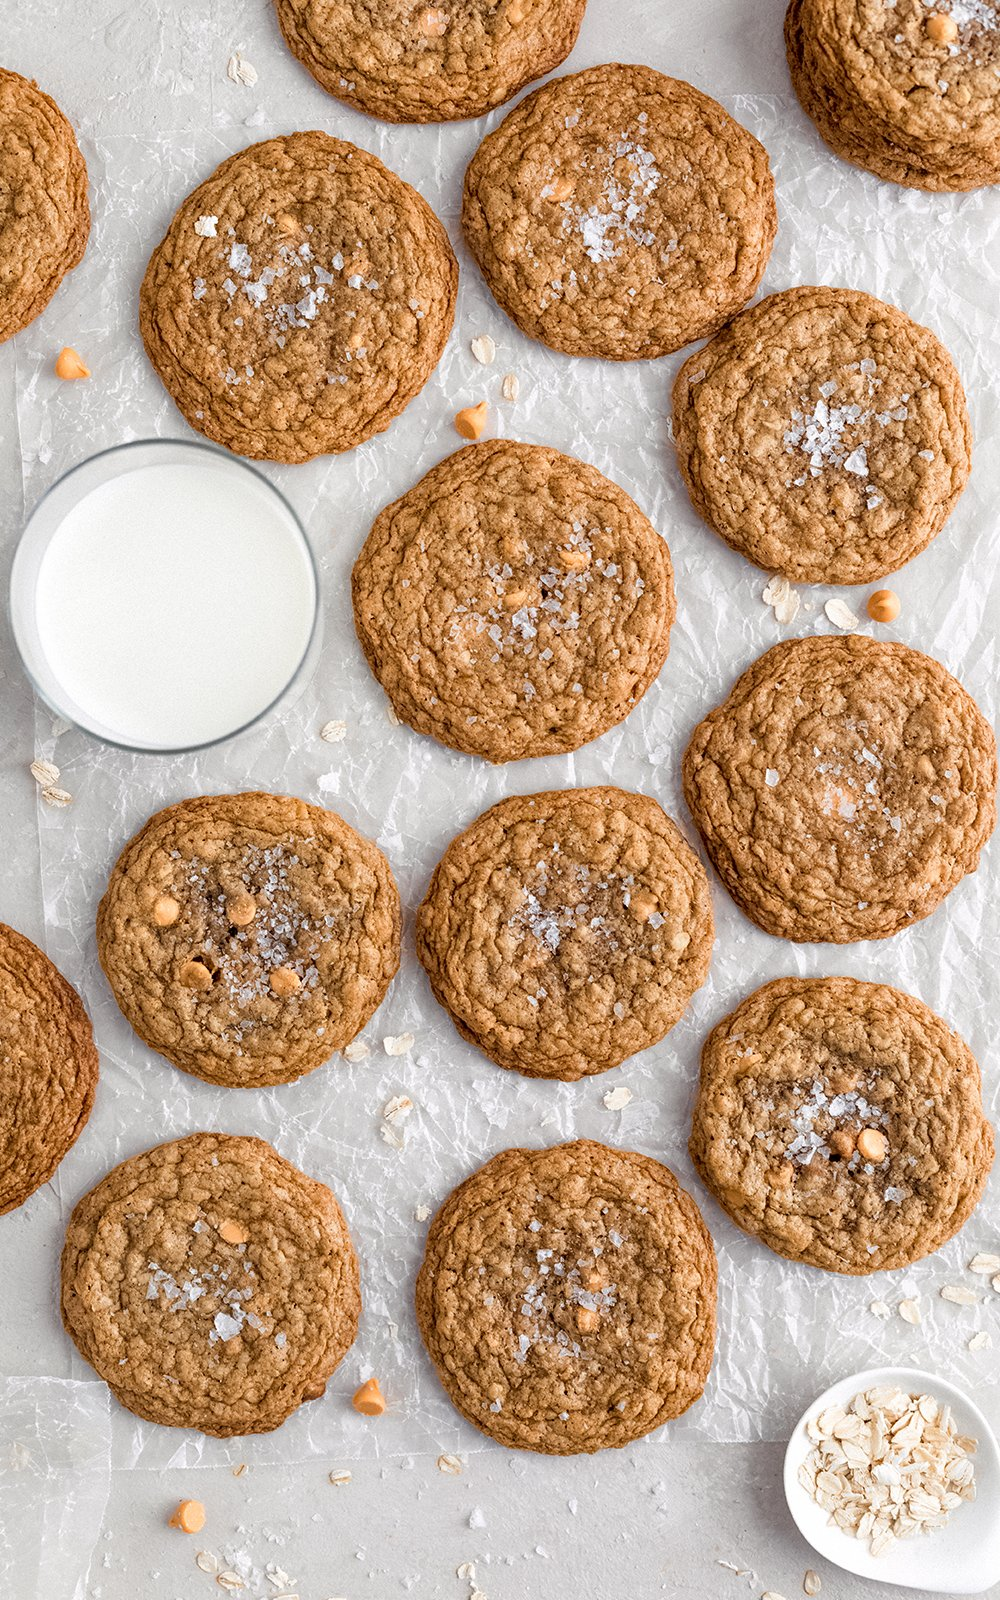 butterscotch oatmeal cookies on parchment paper next to a glass of milk